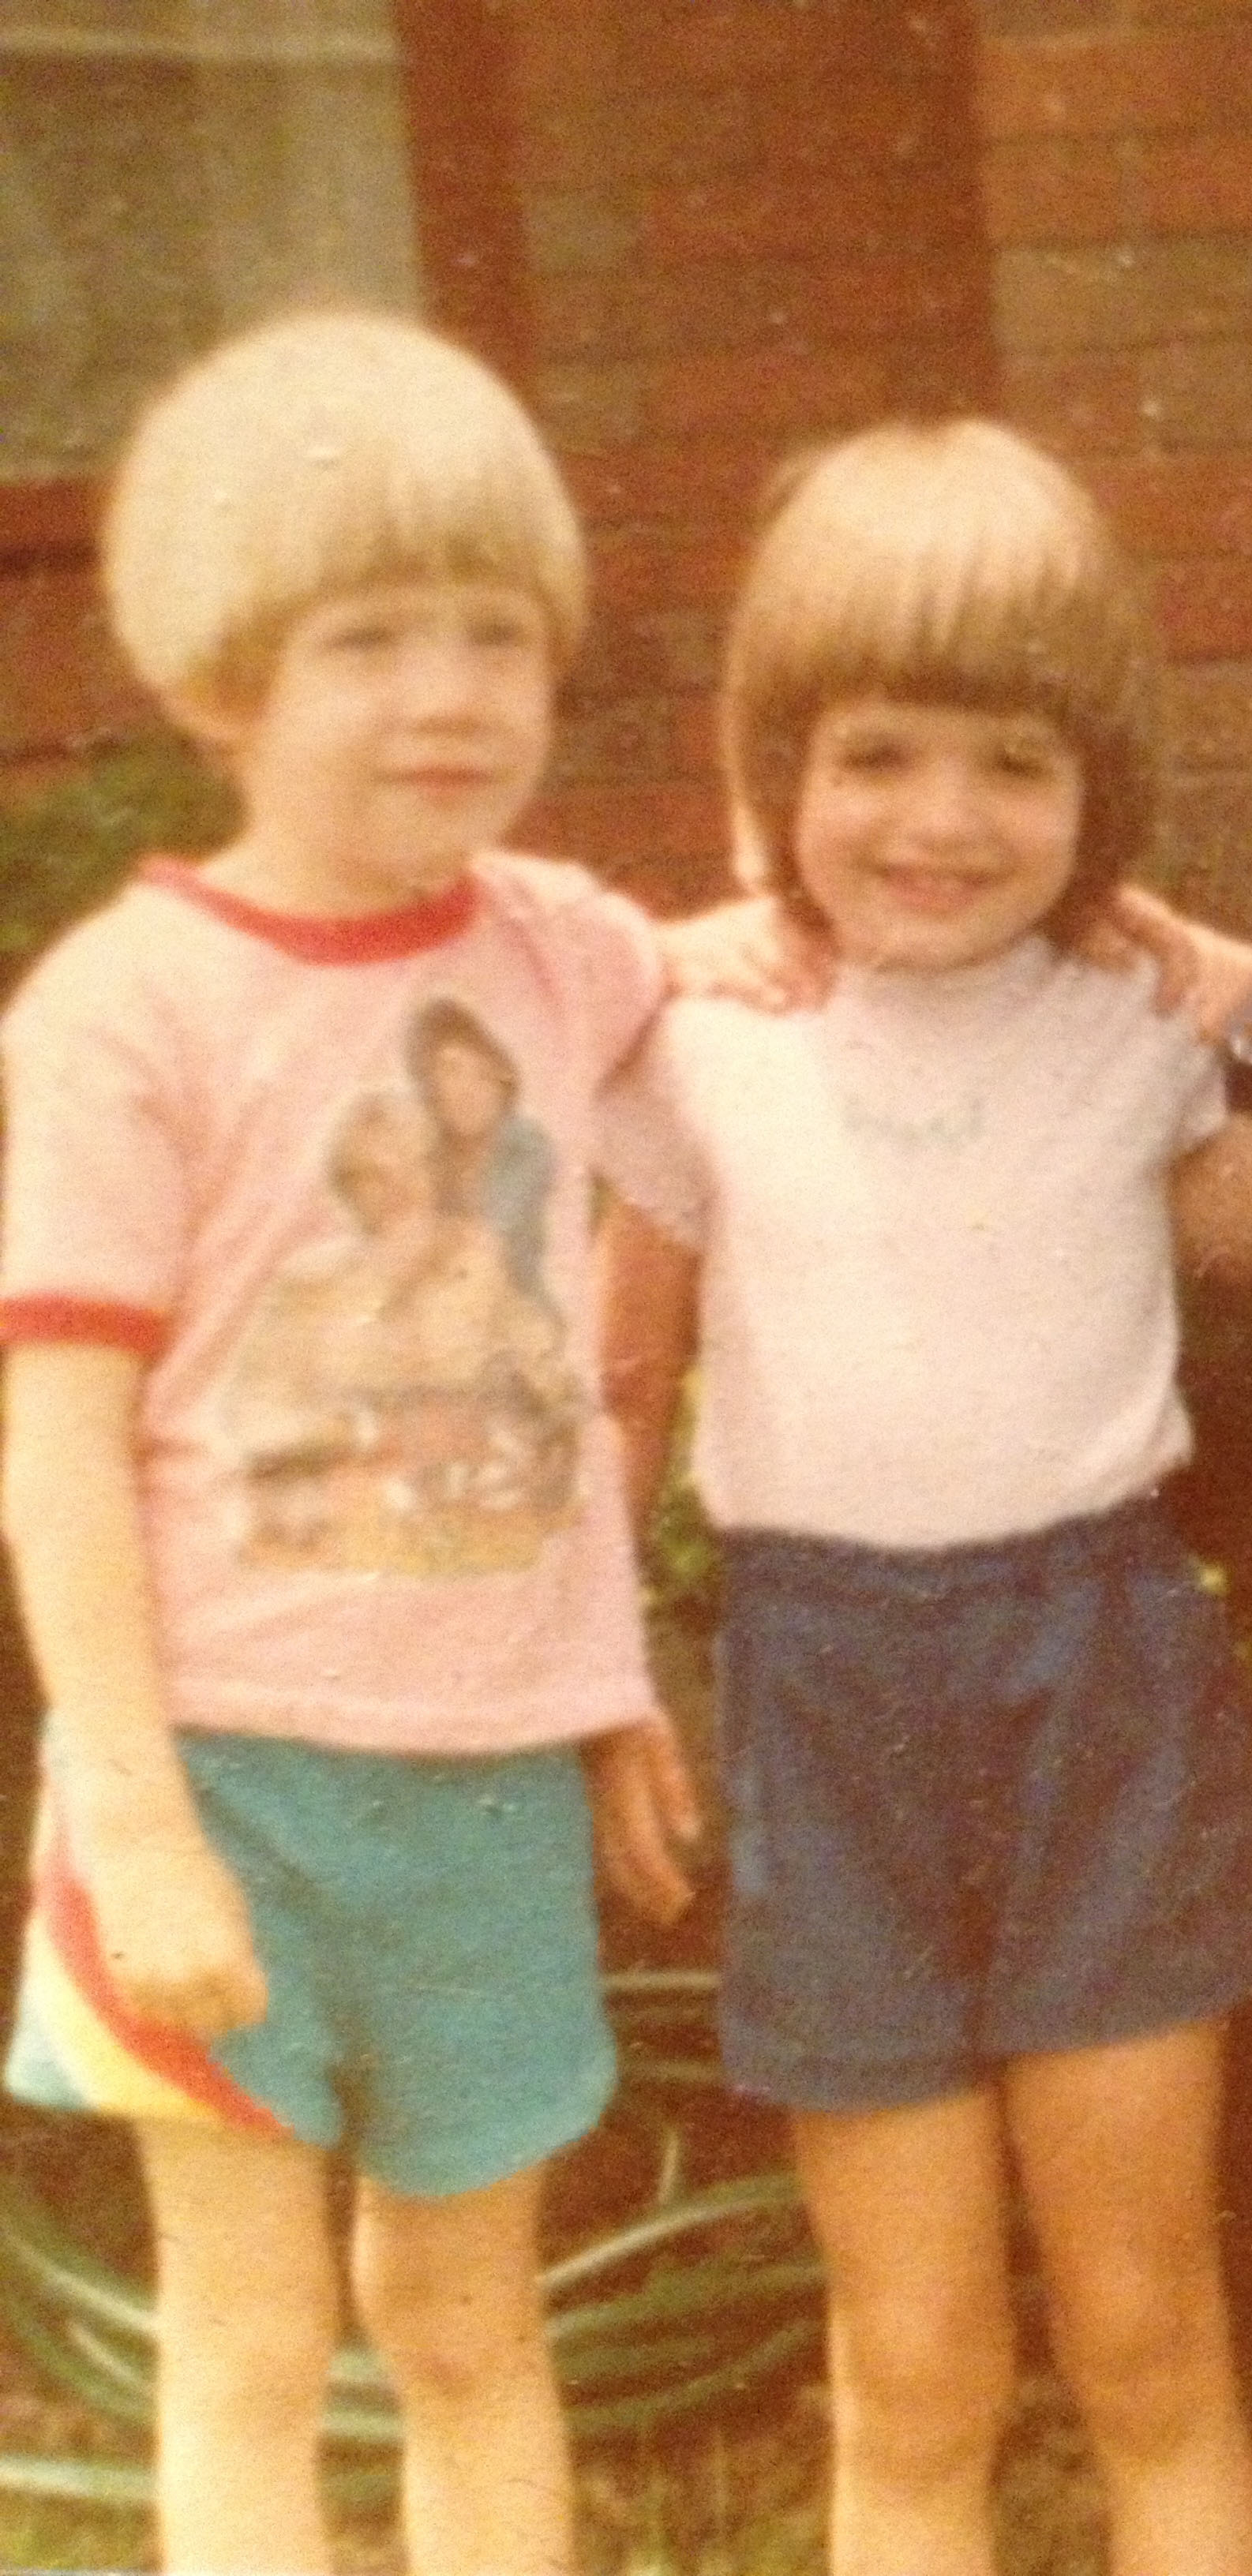 Yes a bad photo but look how cute we were!!!!!! Casey & Angela Paolini 1980's